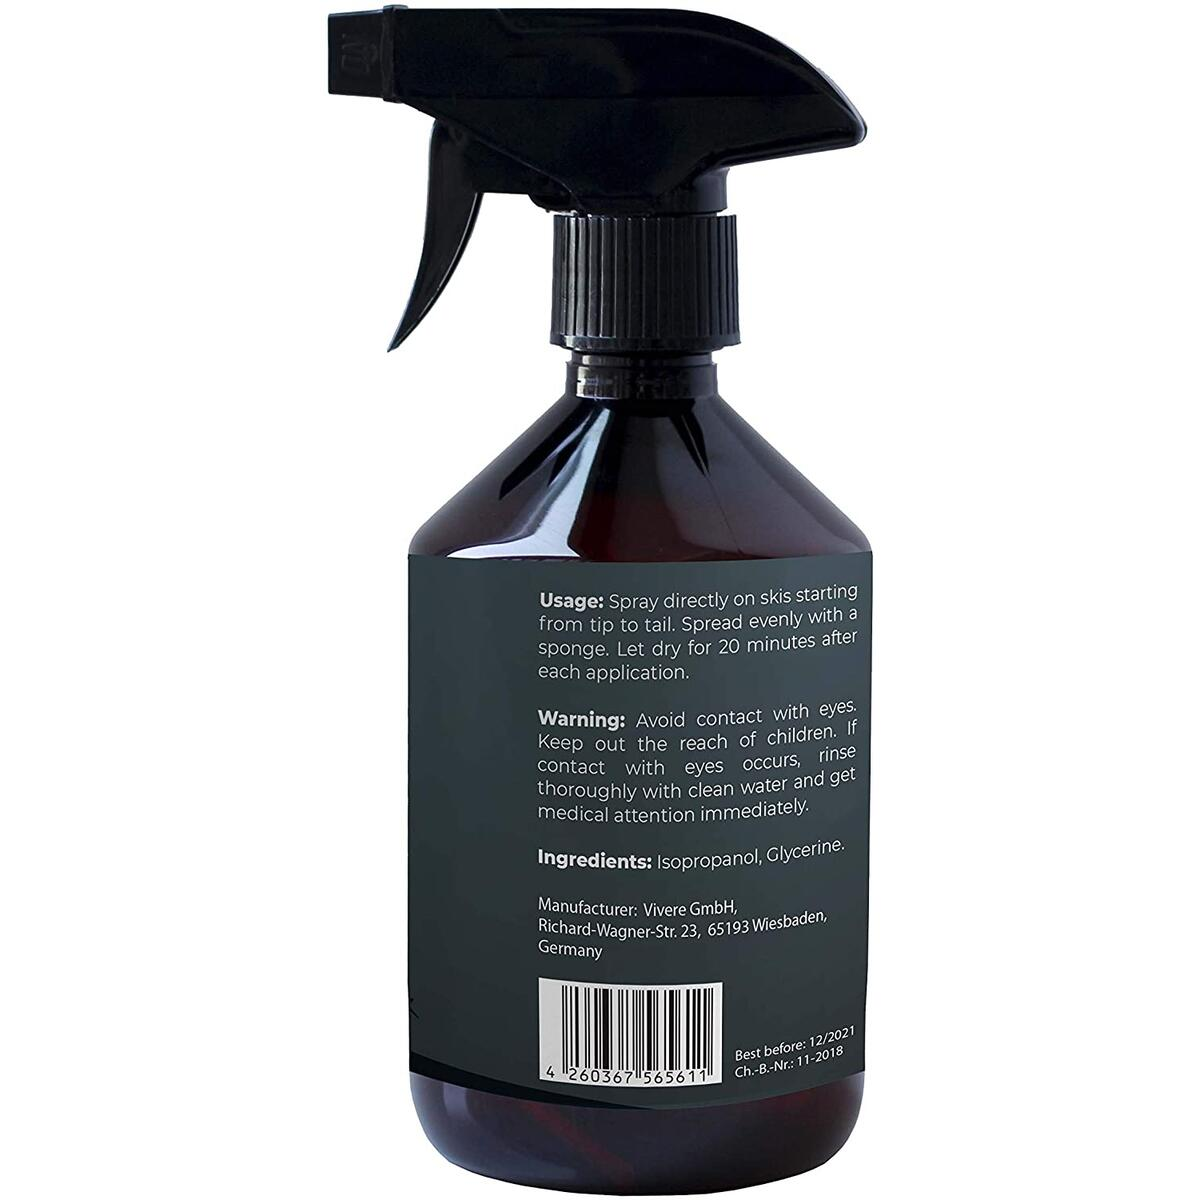 Ski and Snowboard Wax Spray  I 250 ml I Ski board Maintenance tool to prevent dryness I Ensure excellent performance and maximum skiing fun I Alternative to Wax wipes and Rub on Wax